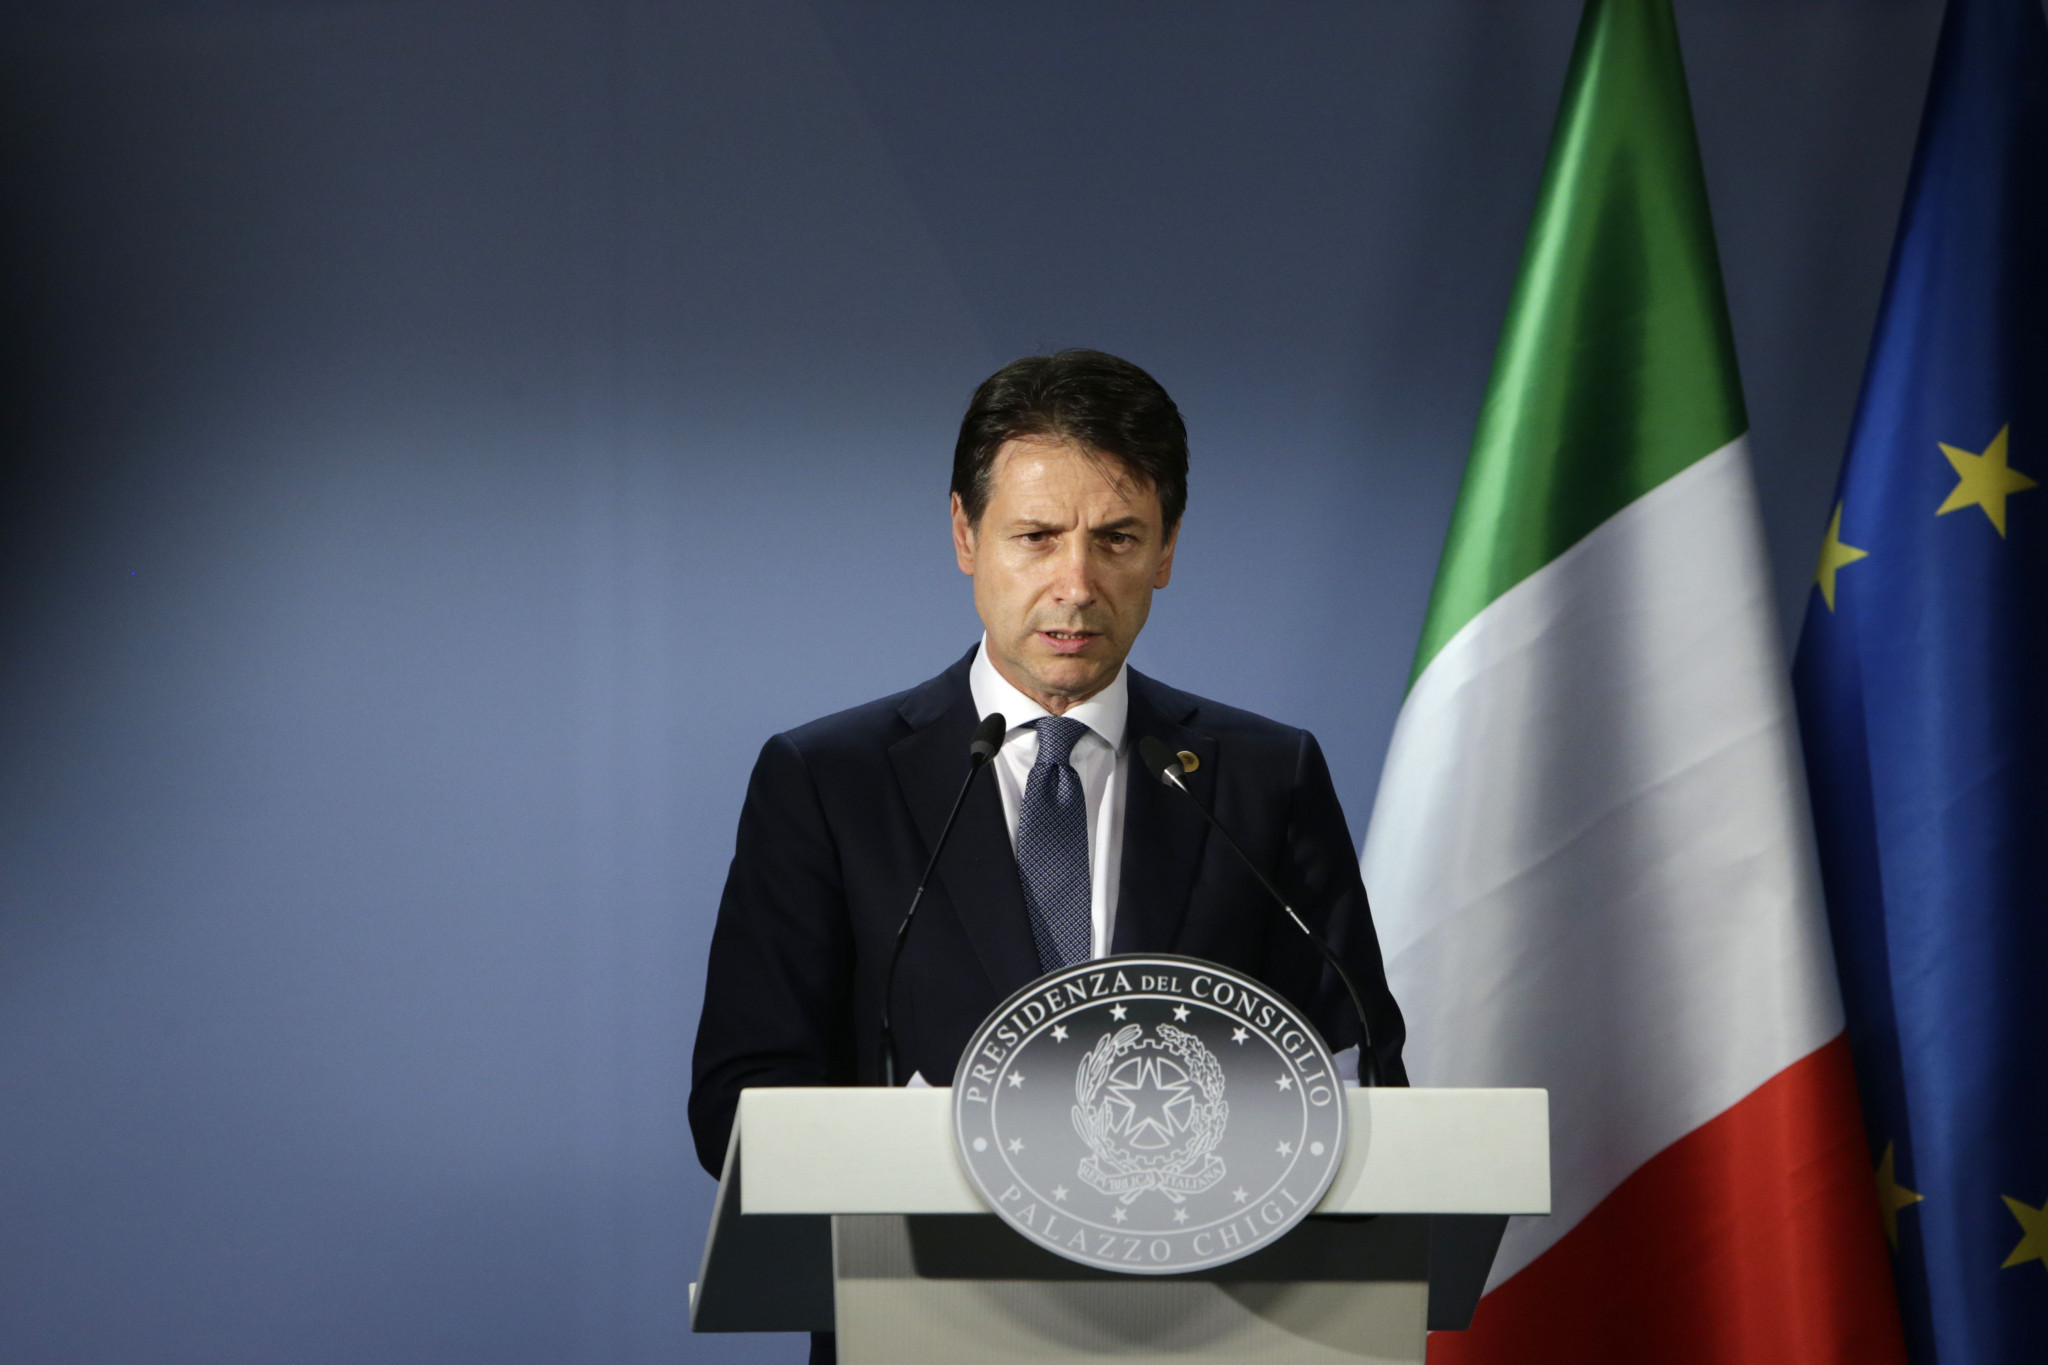 Giuseppe Conte's administration has backed the Italian bid ©Getty Images